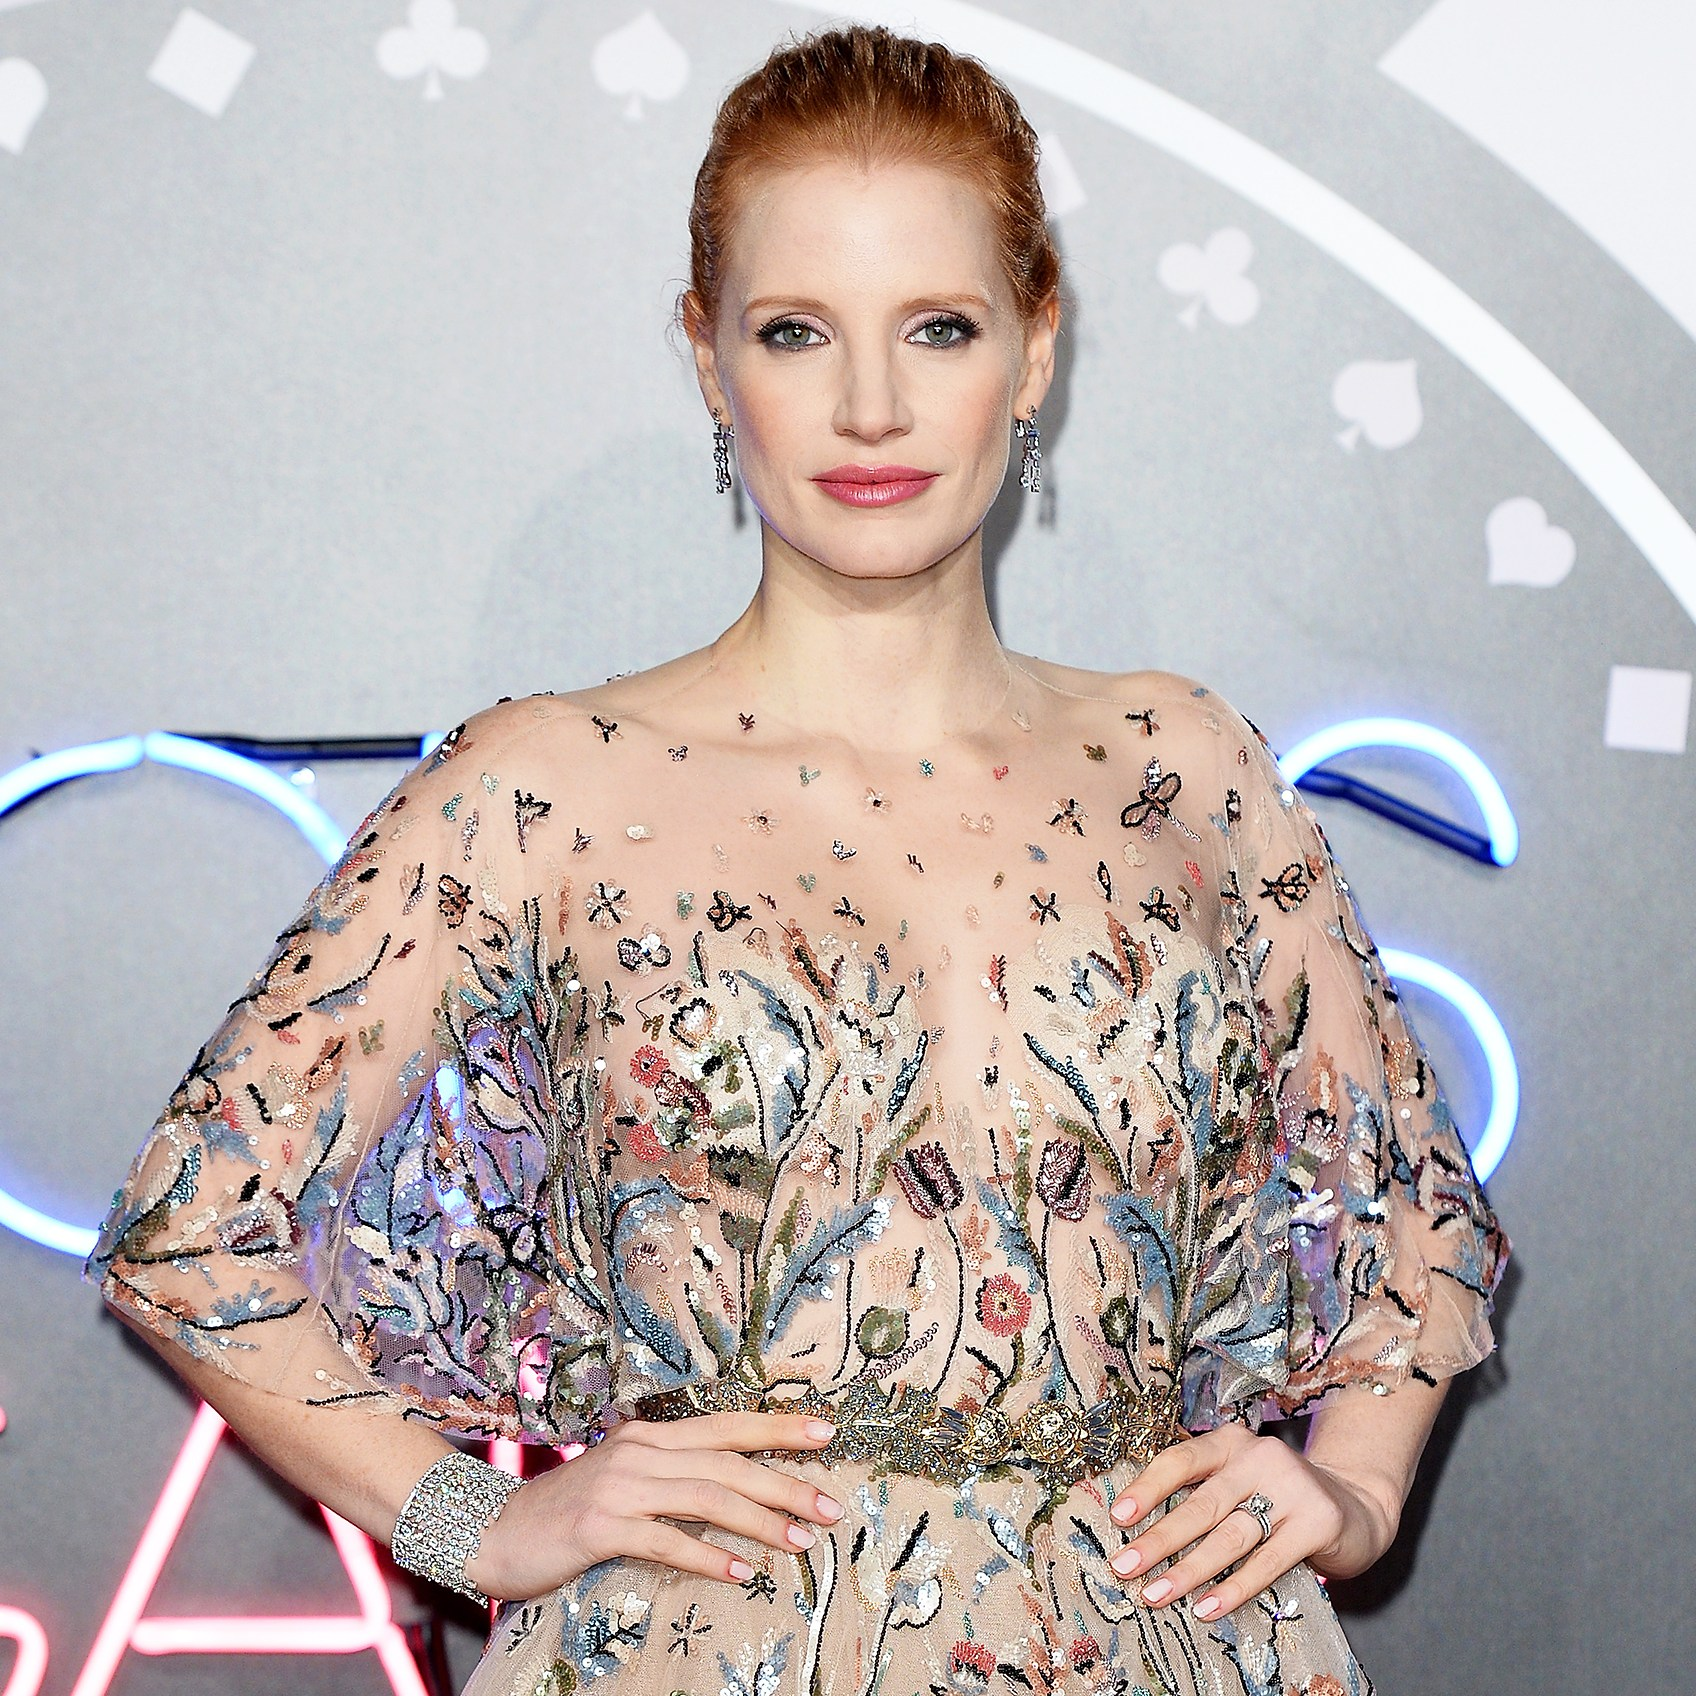 Jessica Chastain Feared Speaking Out About Sexual Harassment